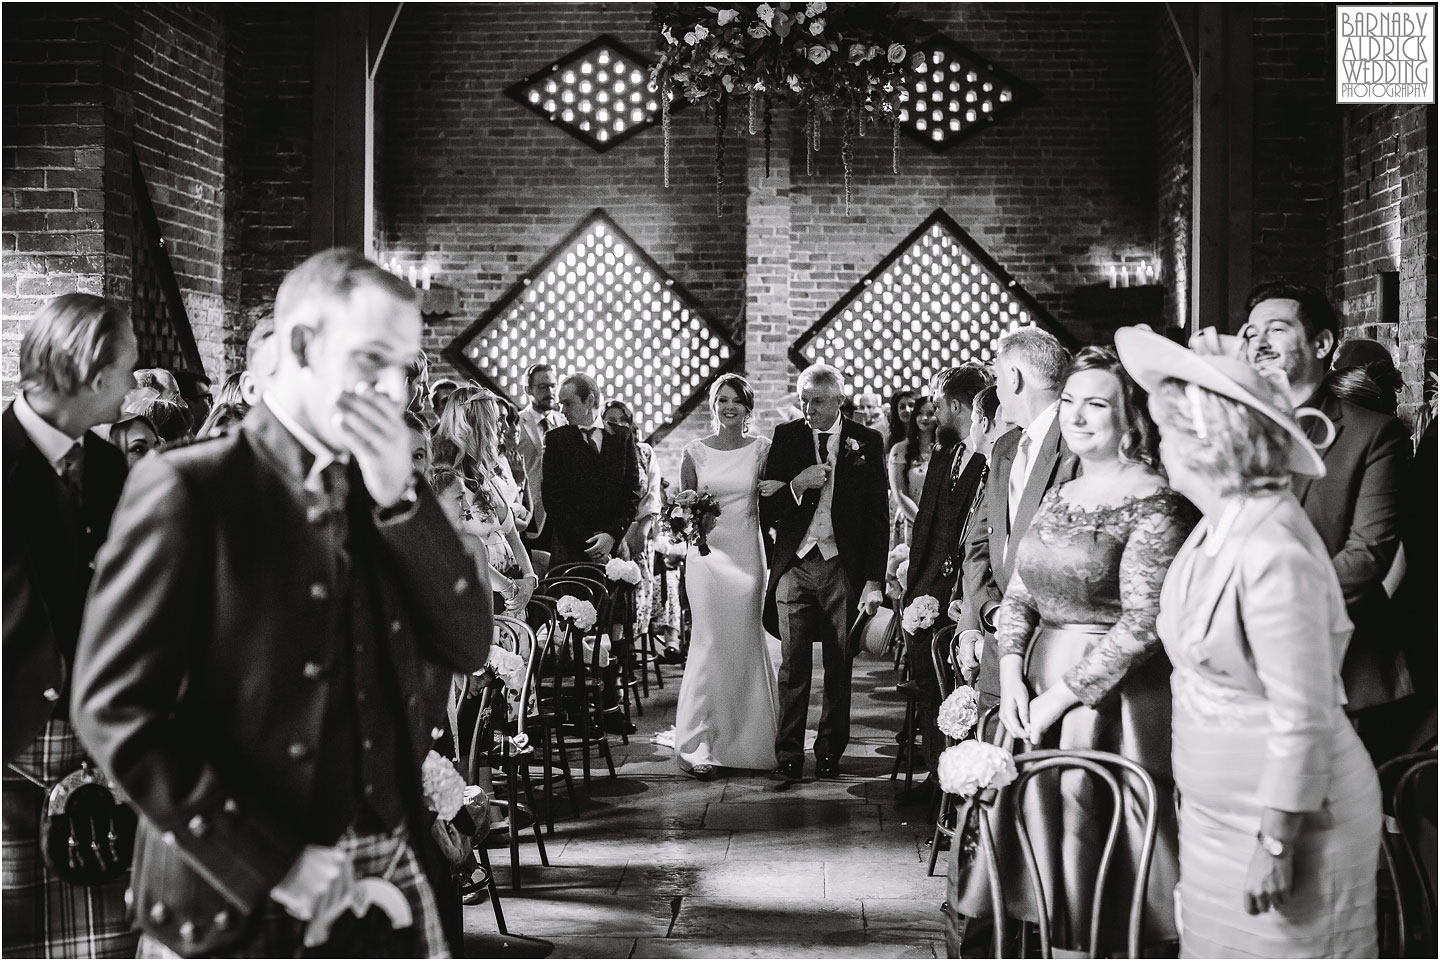 Bridal entry wedding photograph, Shustoke farm barns, Coleshill wedding photographer